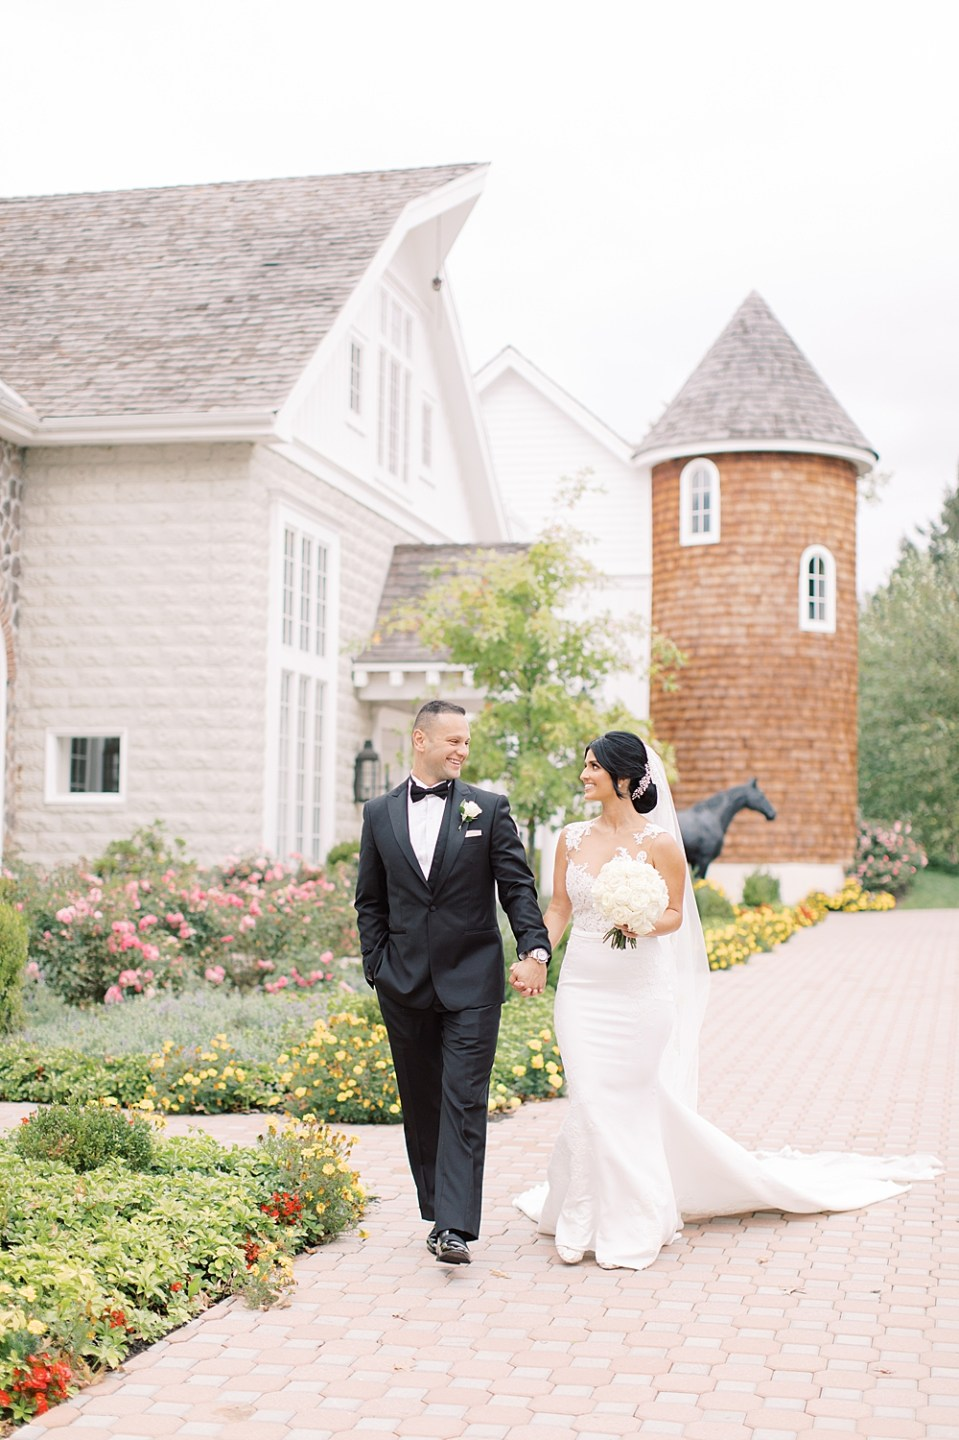 wedding photography at the ryland inn | new jersey wedding photographer sarah canning